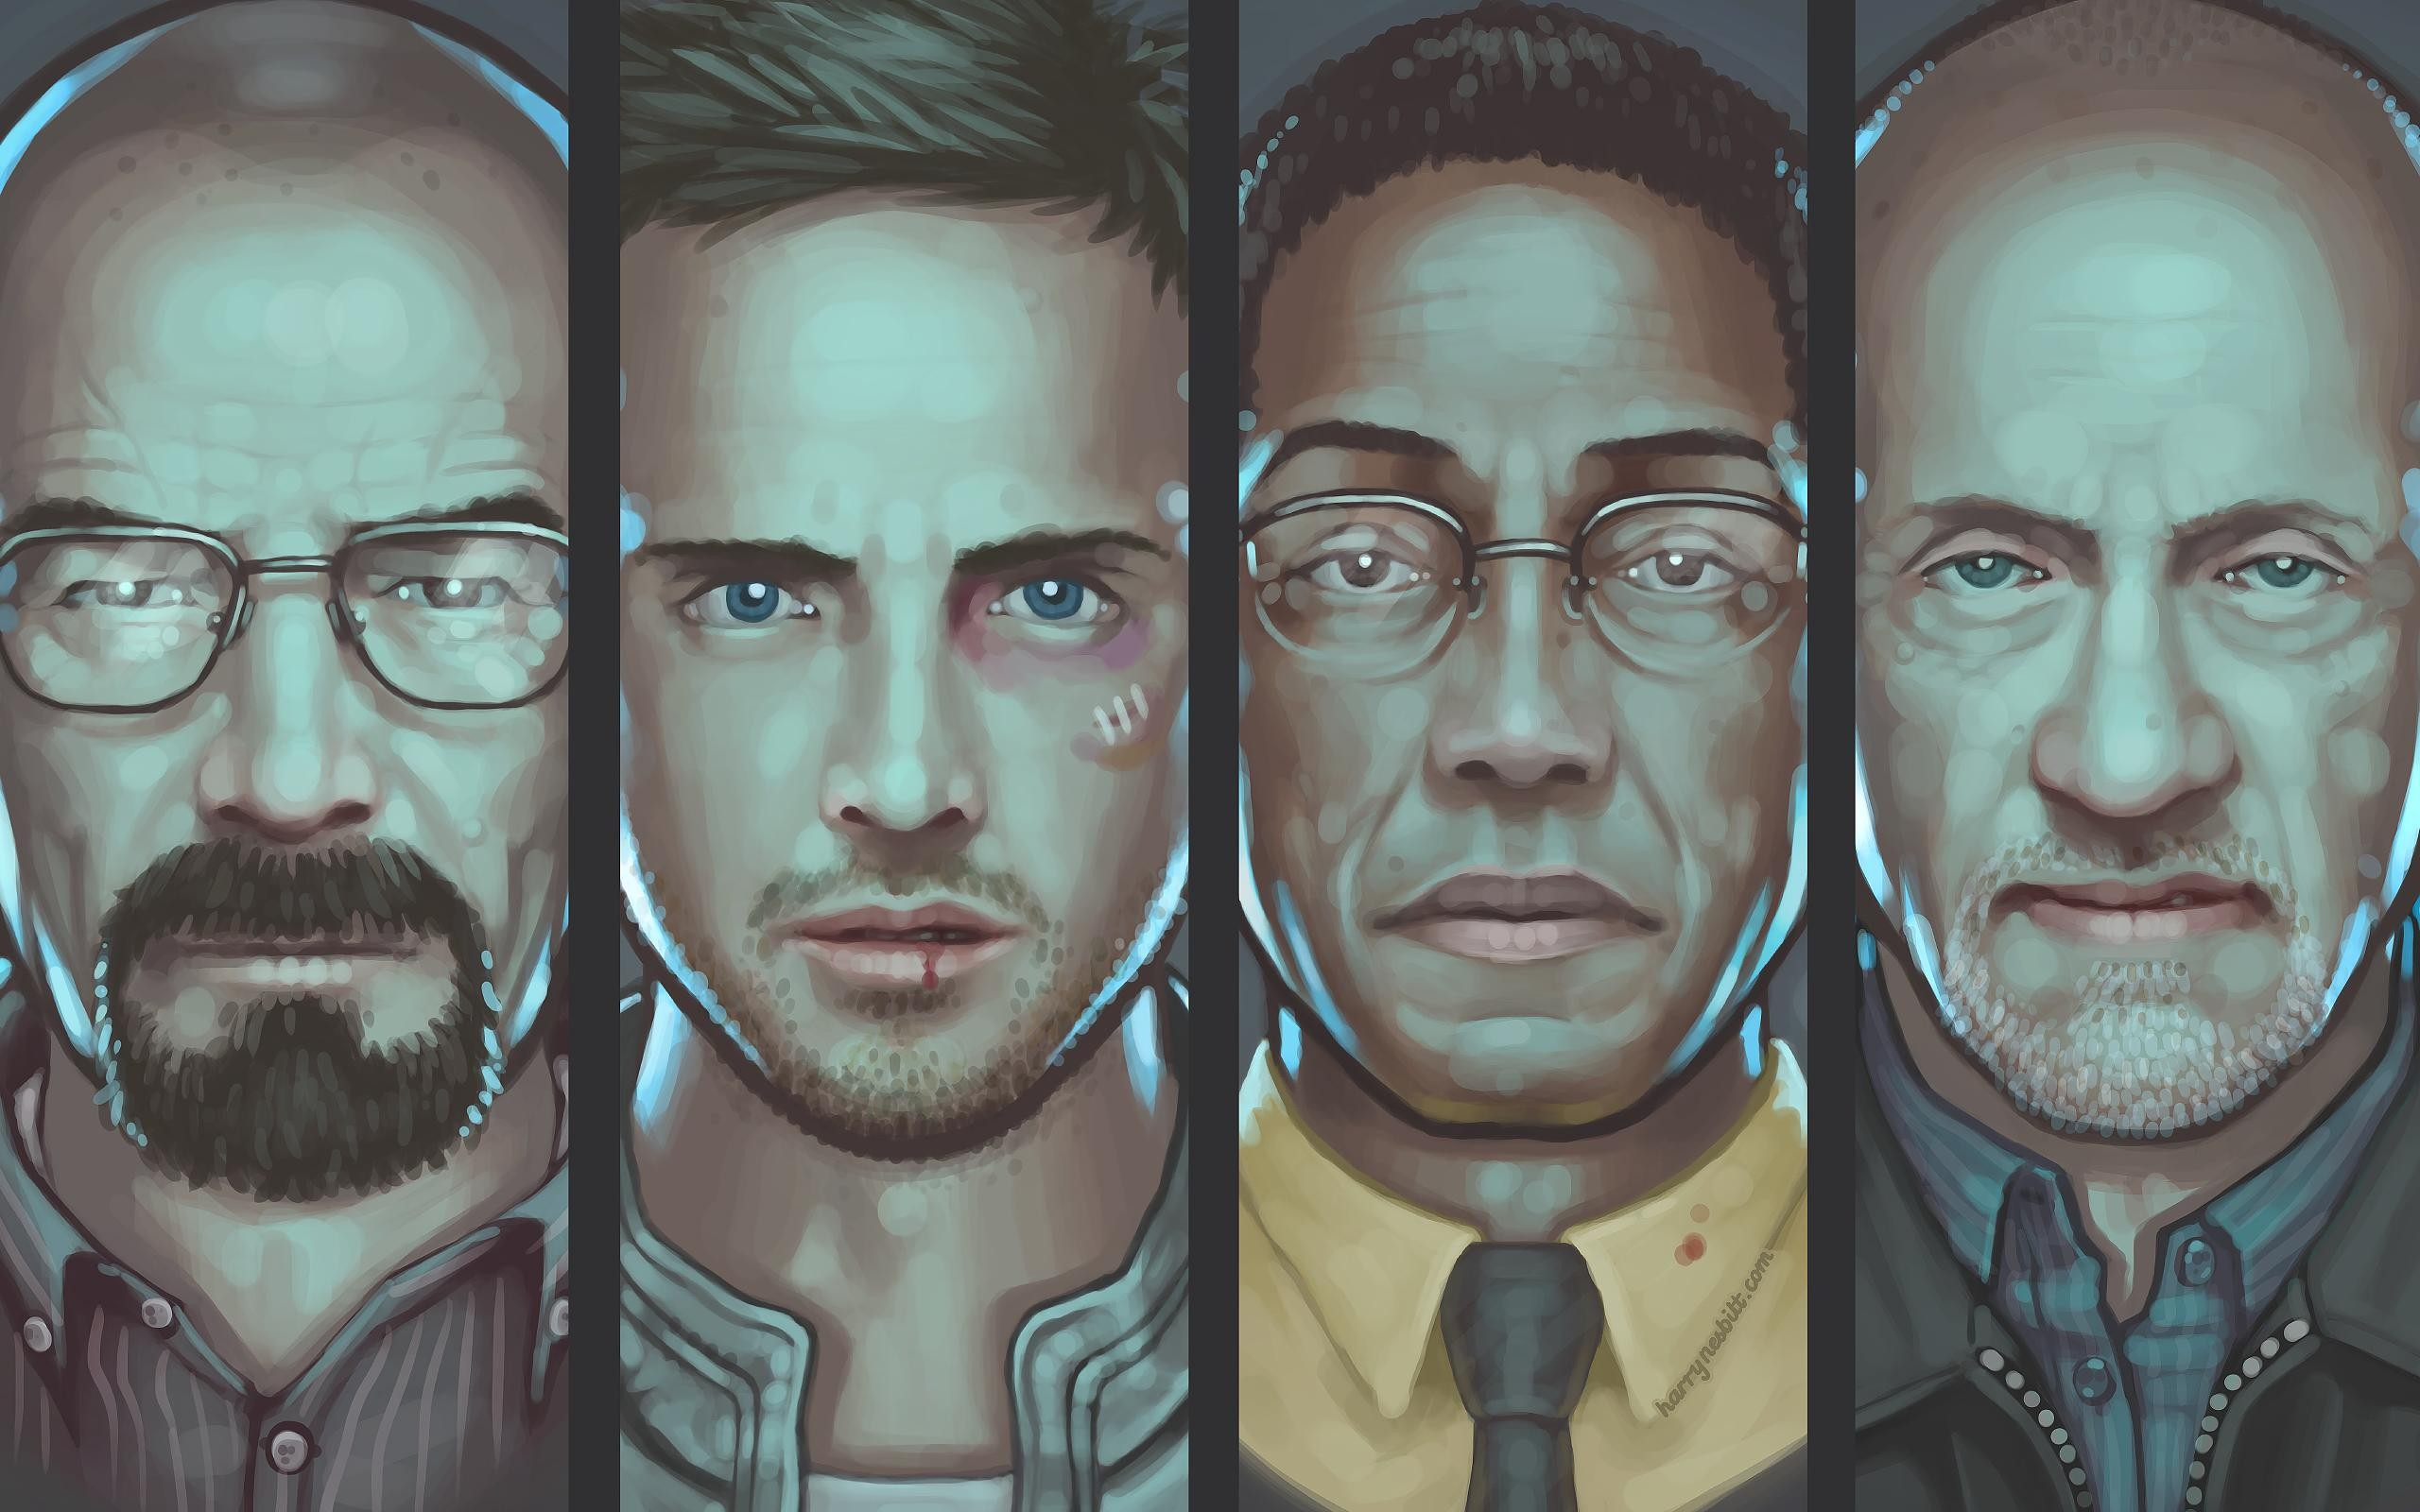 breaking bad wallpaper let 39 s talk about